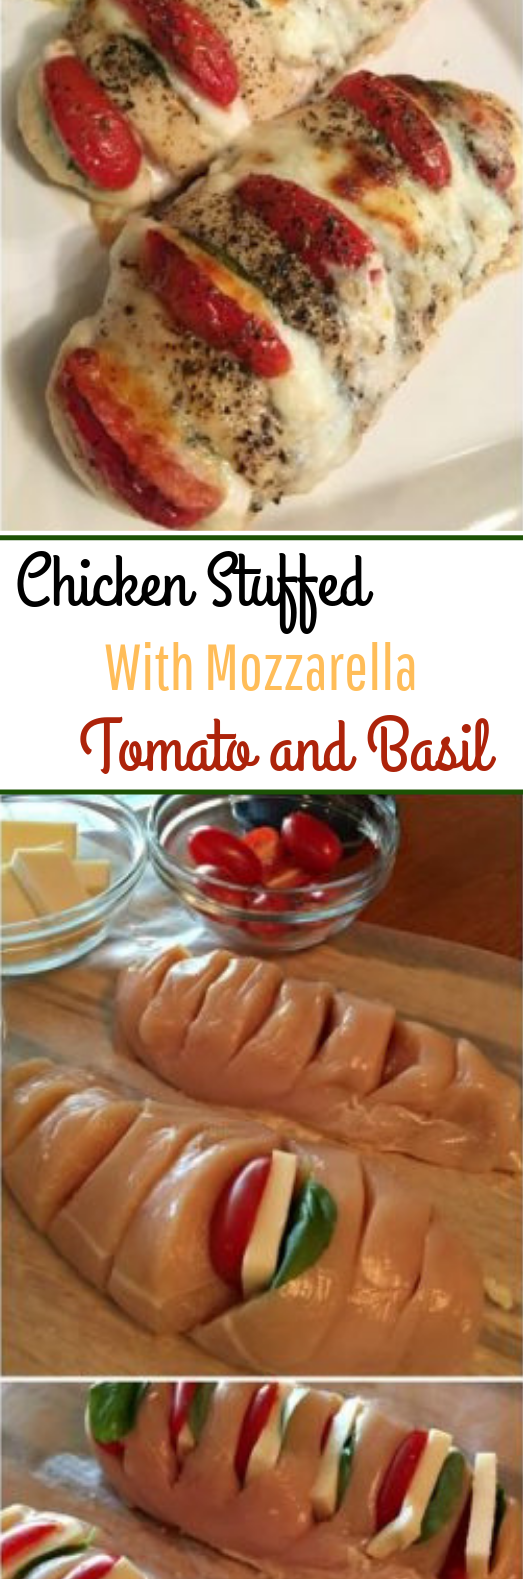 Chicken Stuffed with Mozzarella, Tomato and Basil #chicken #dinner